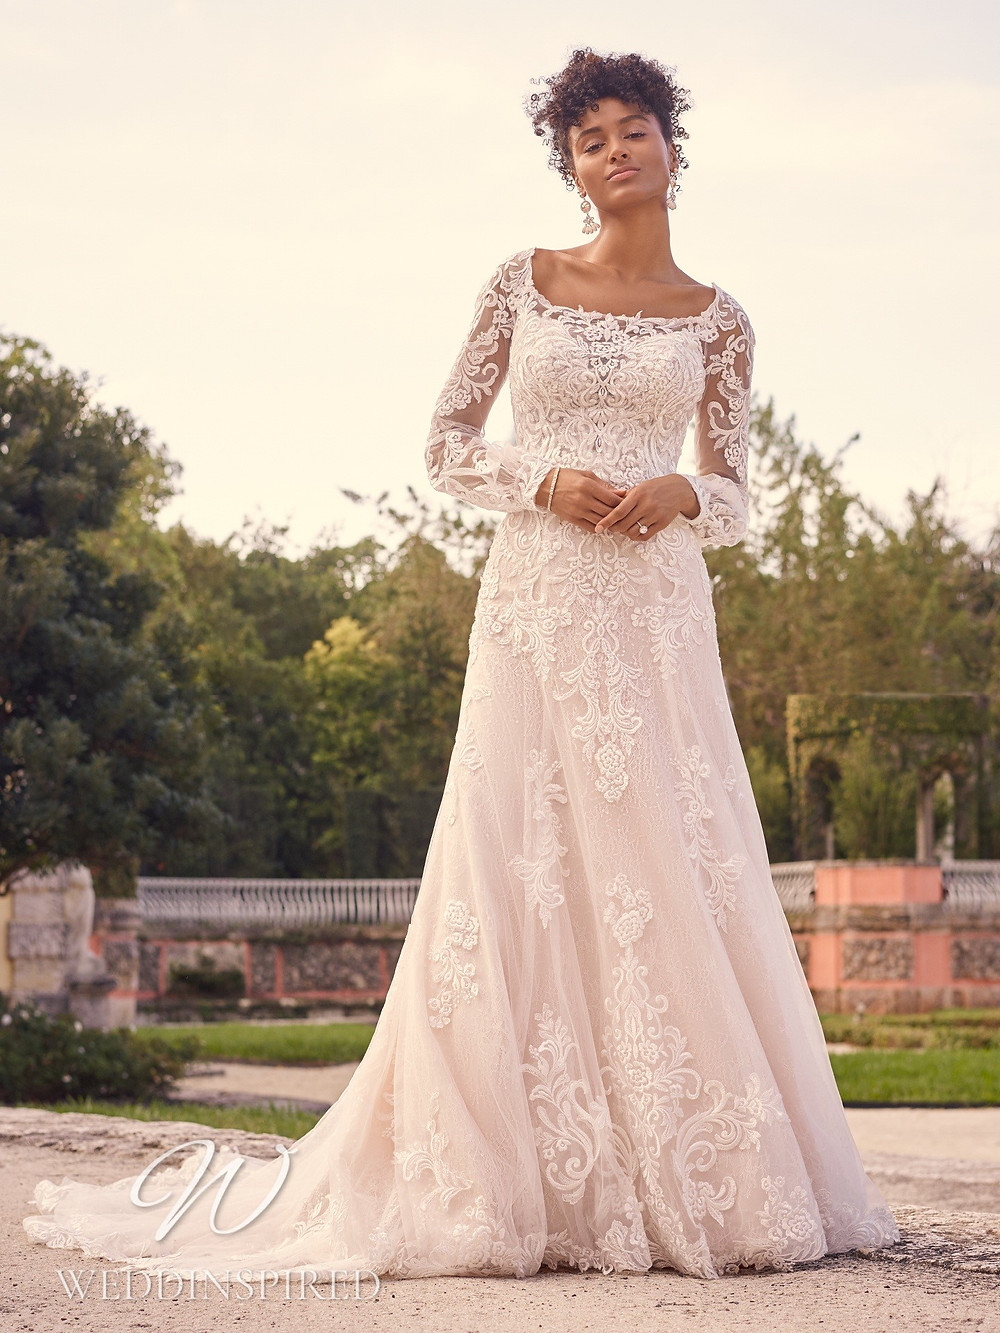 A Maggie Sottero 2021 lace A-line wedding dress with long sleeves